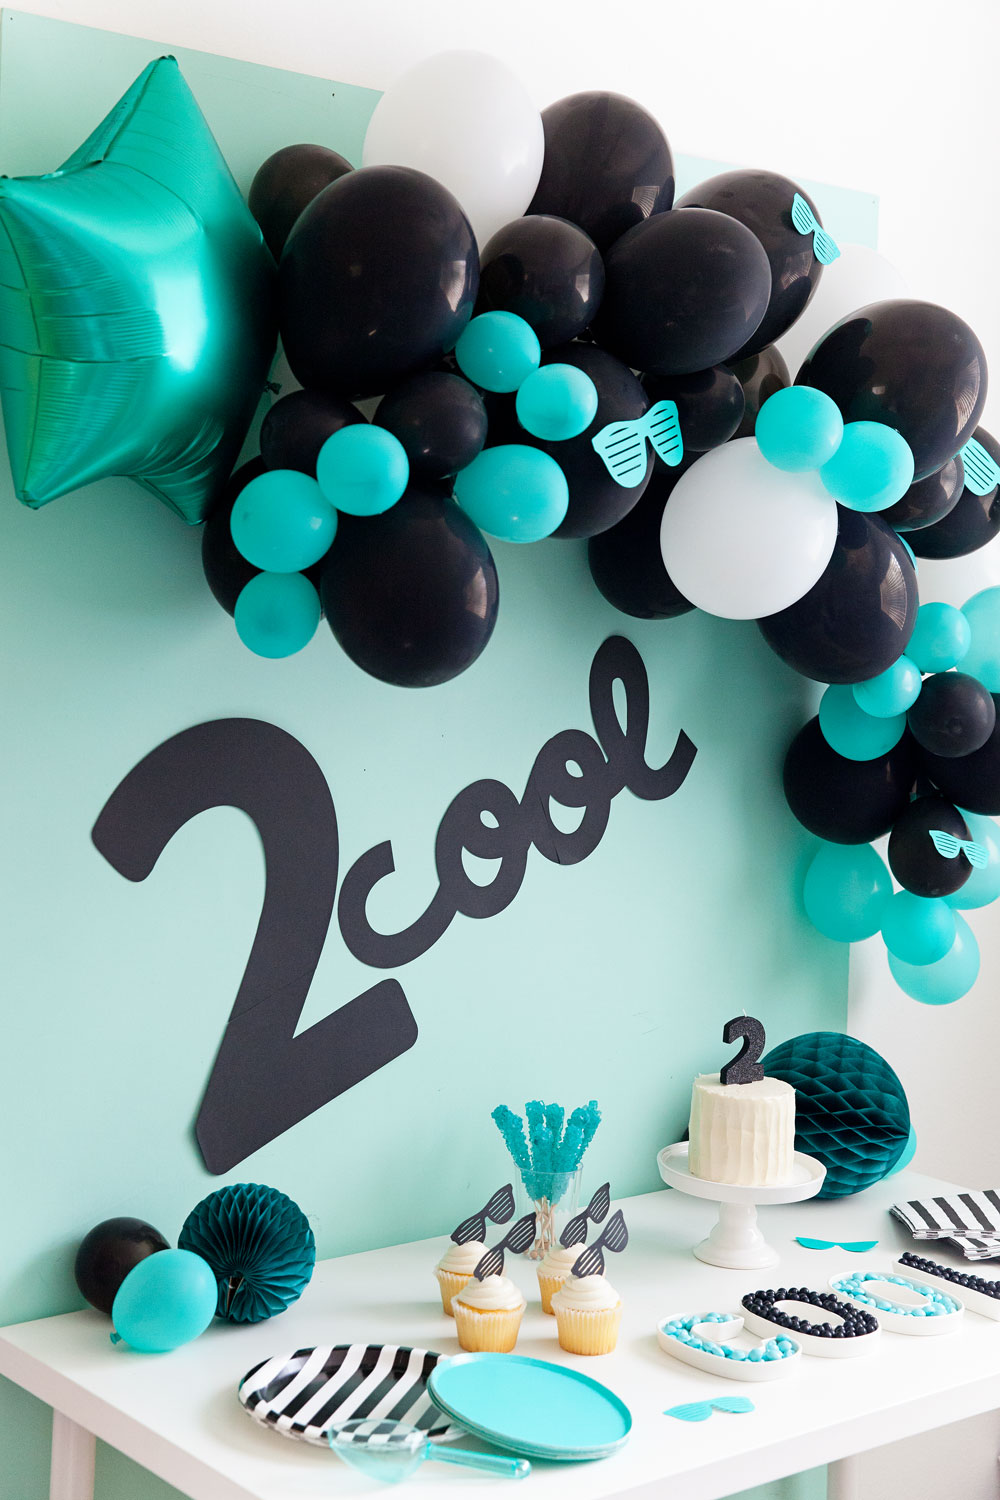 2ND BIRTHDAY PARTY IDEA - Tell Love and Party